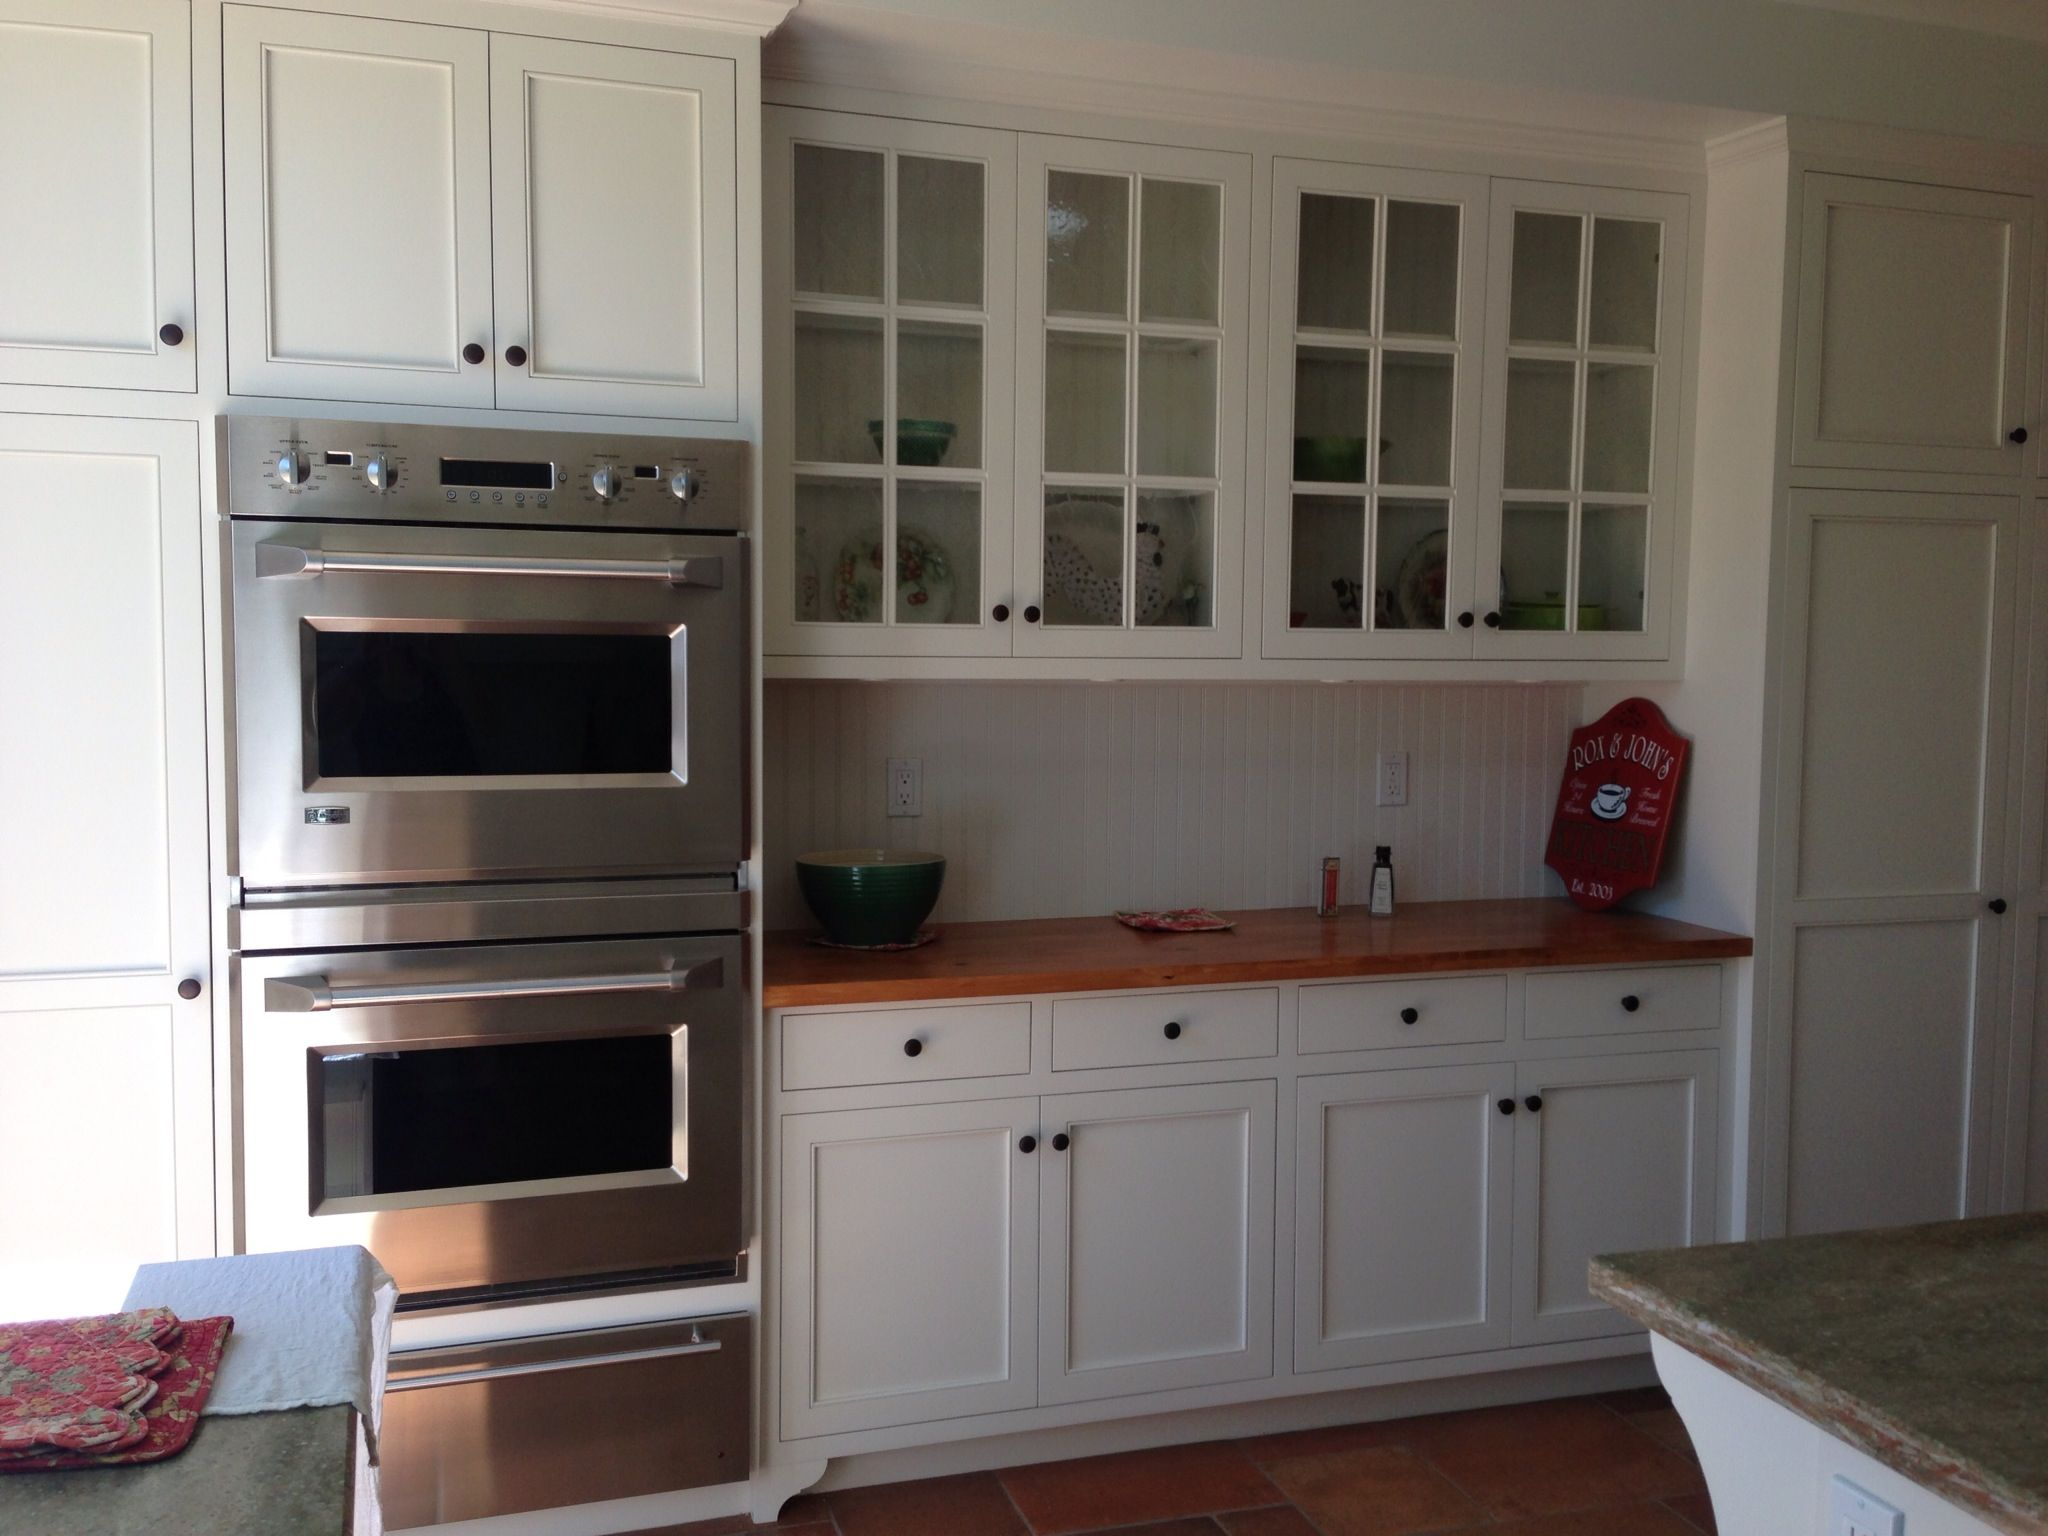 Inset cabinetry Dunn Edwards Swiss Coffee pine counter top